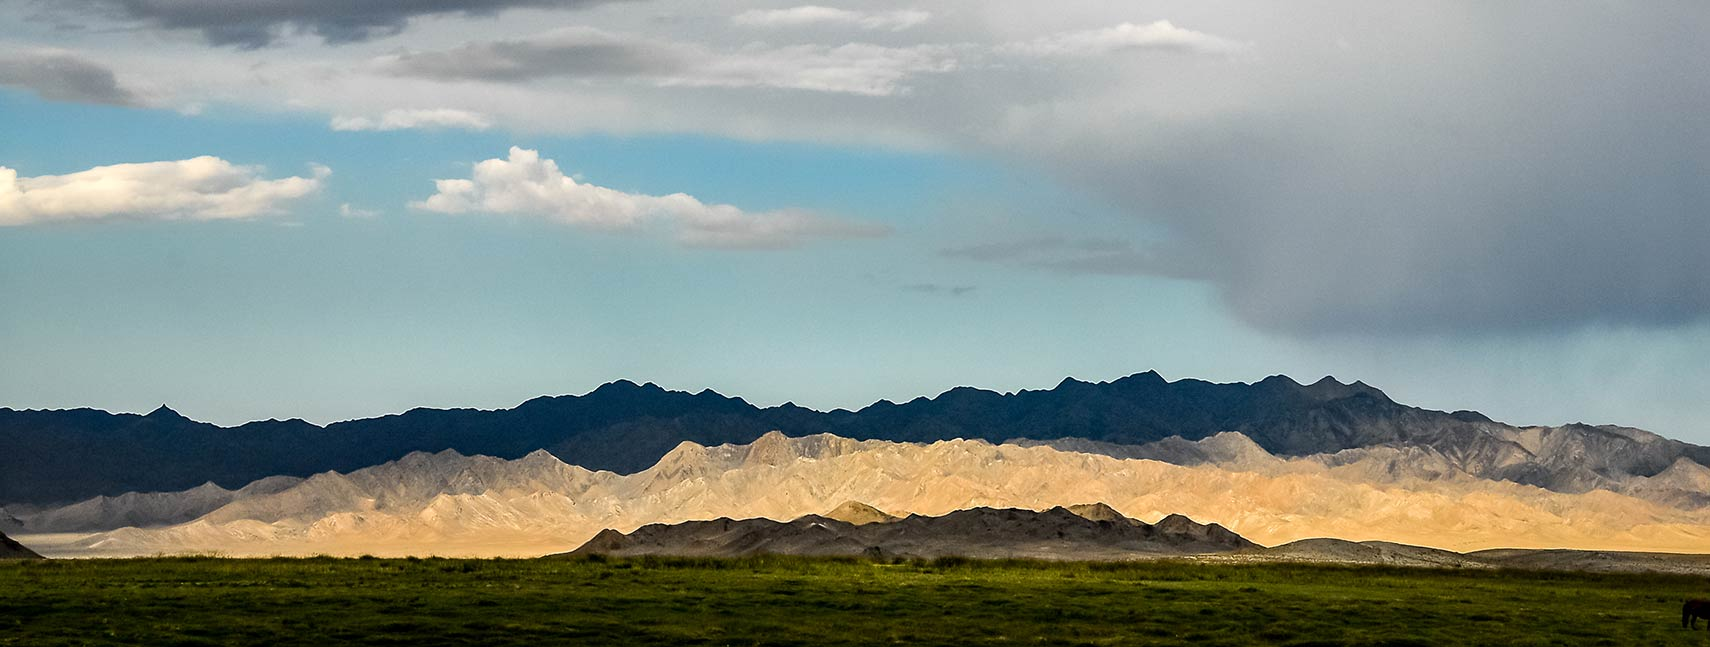 Mongolian Landscape in Khovd Province